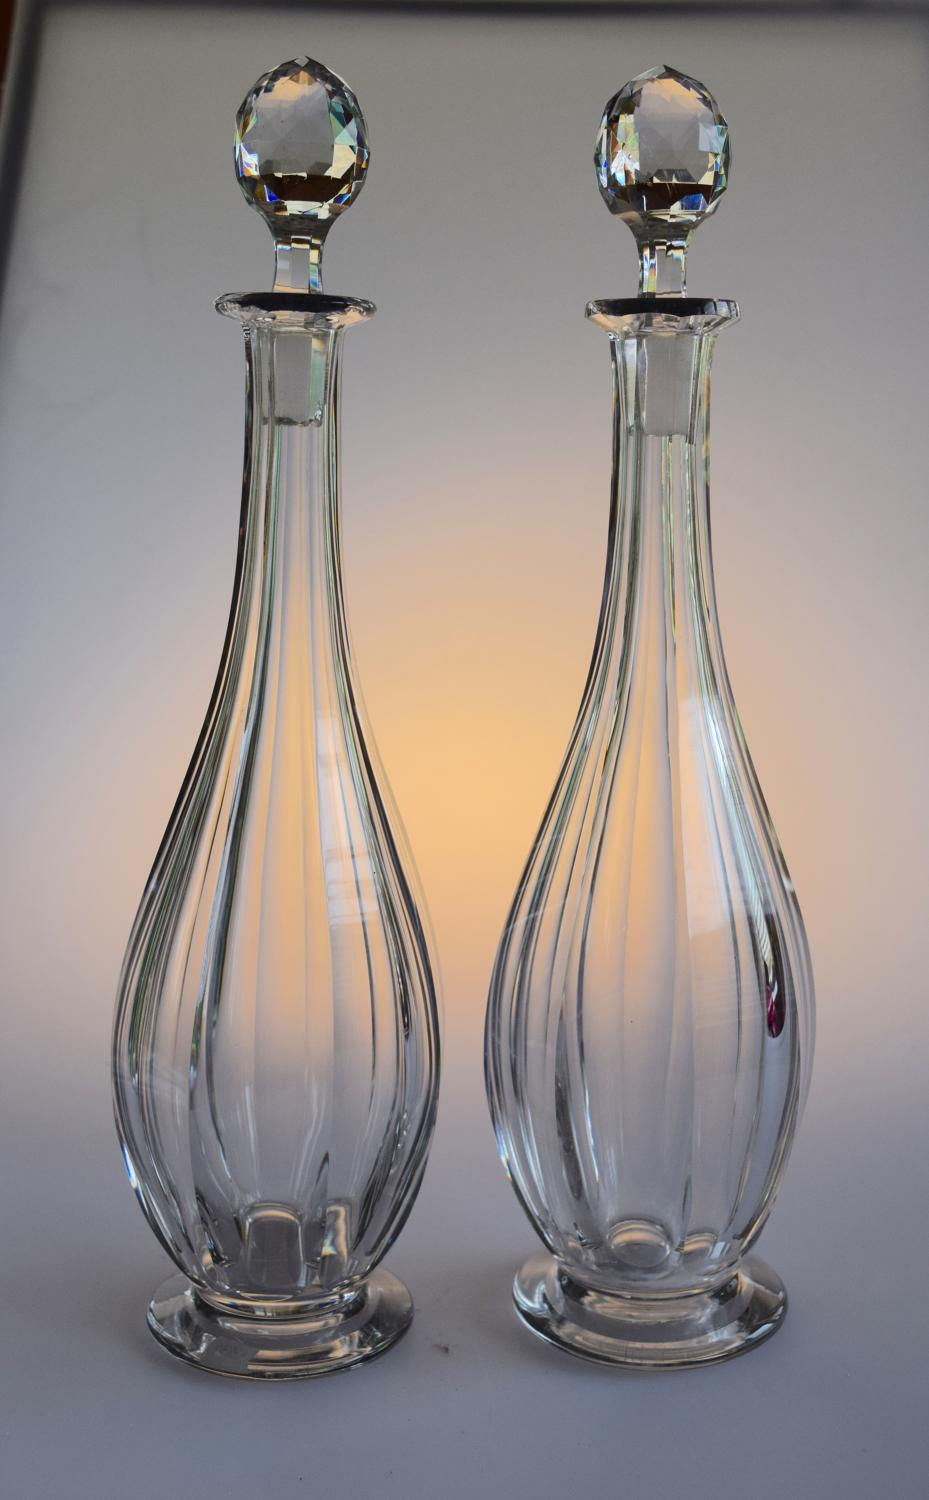 Pair of Baccarat decanters